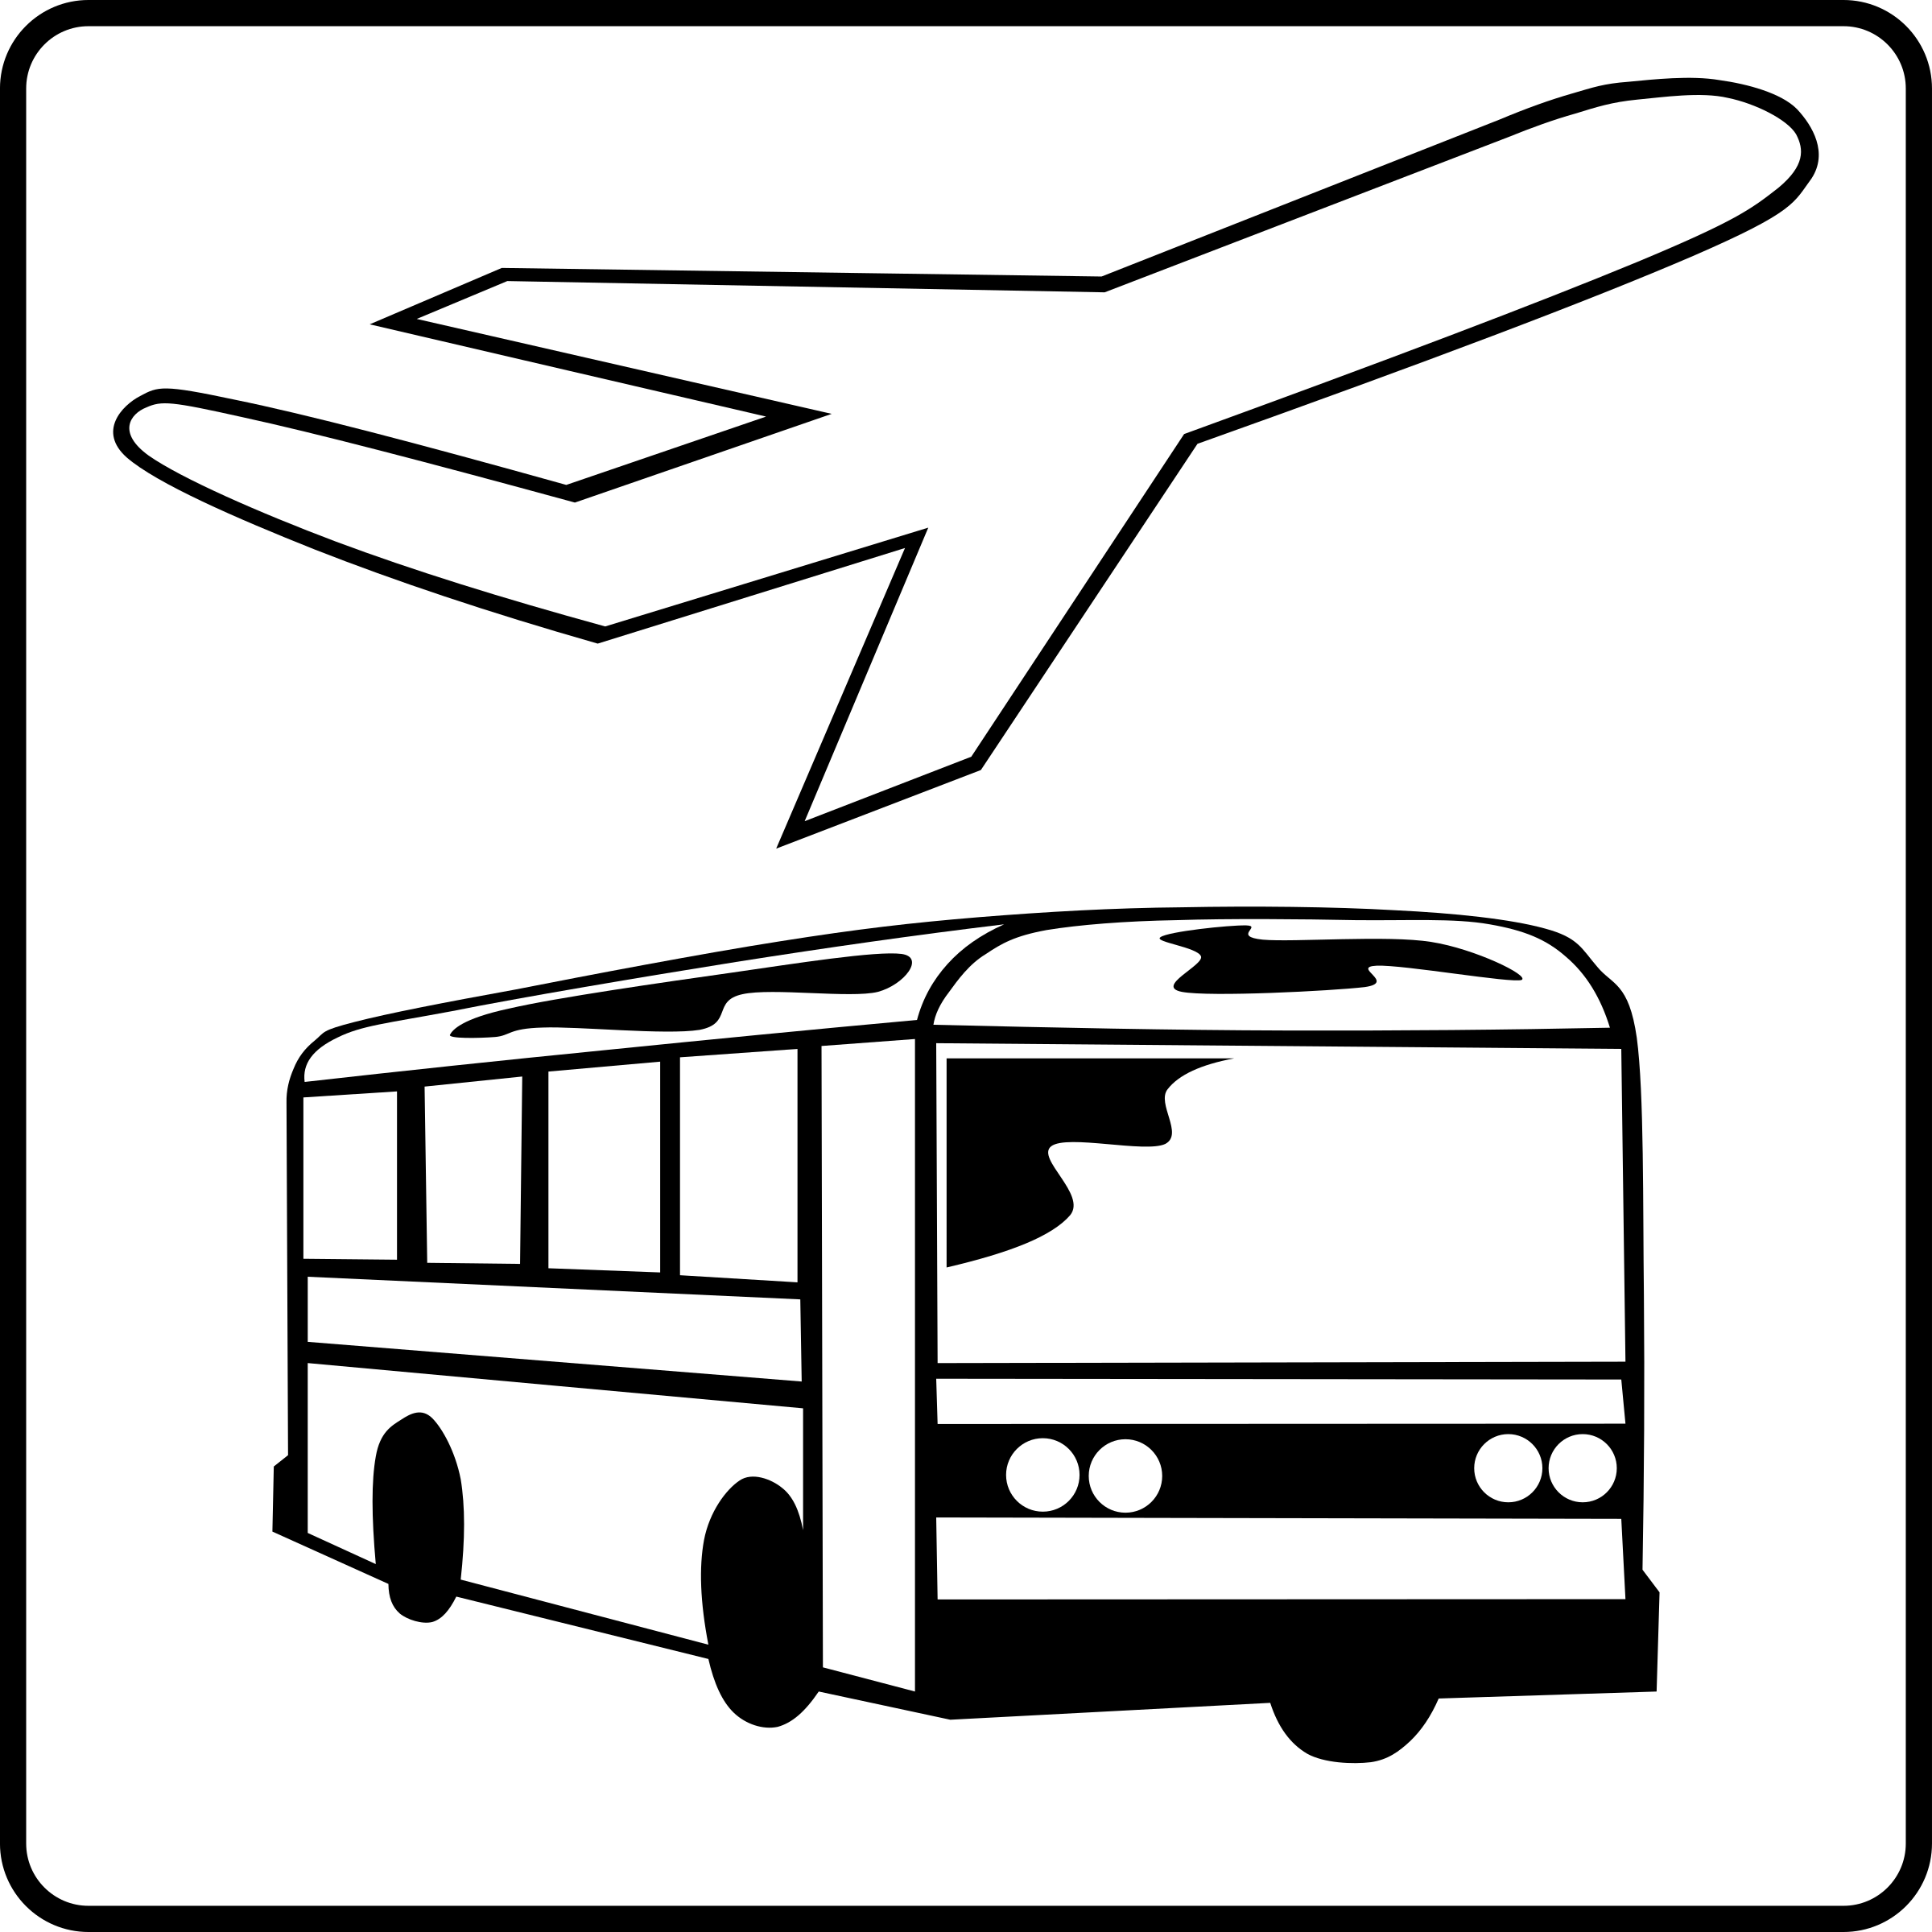 Shuttle clipart transportation service. Hotel icon near icons